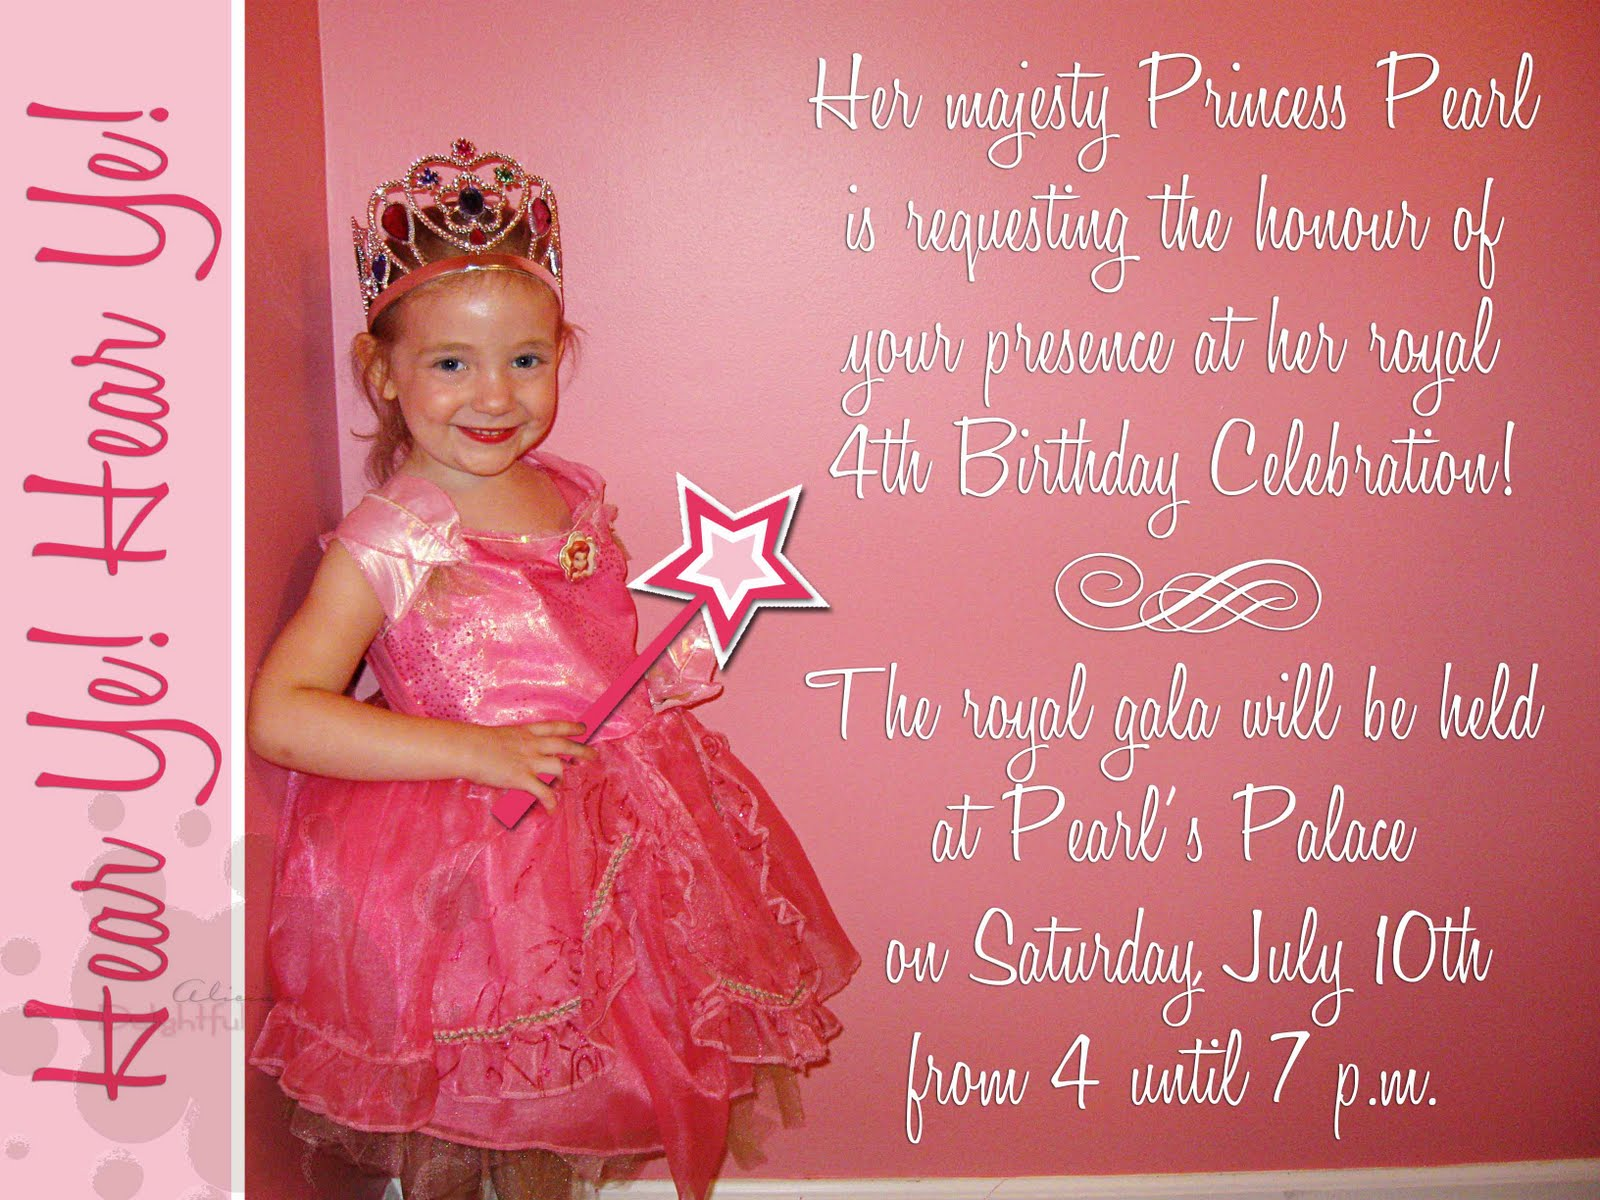 Dorable Belle Birthday Party Invitations Sketch - Resume Ideas ...